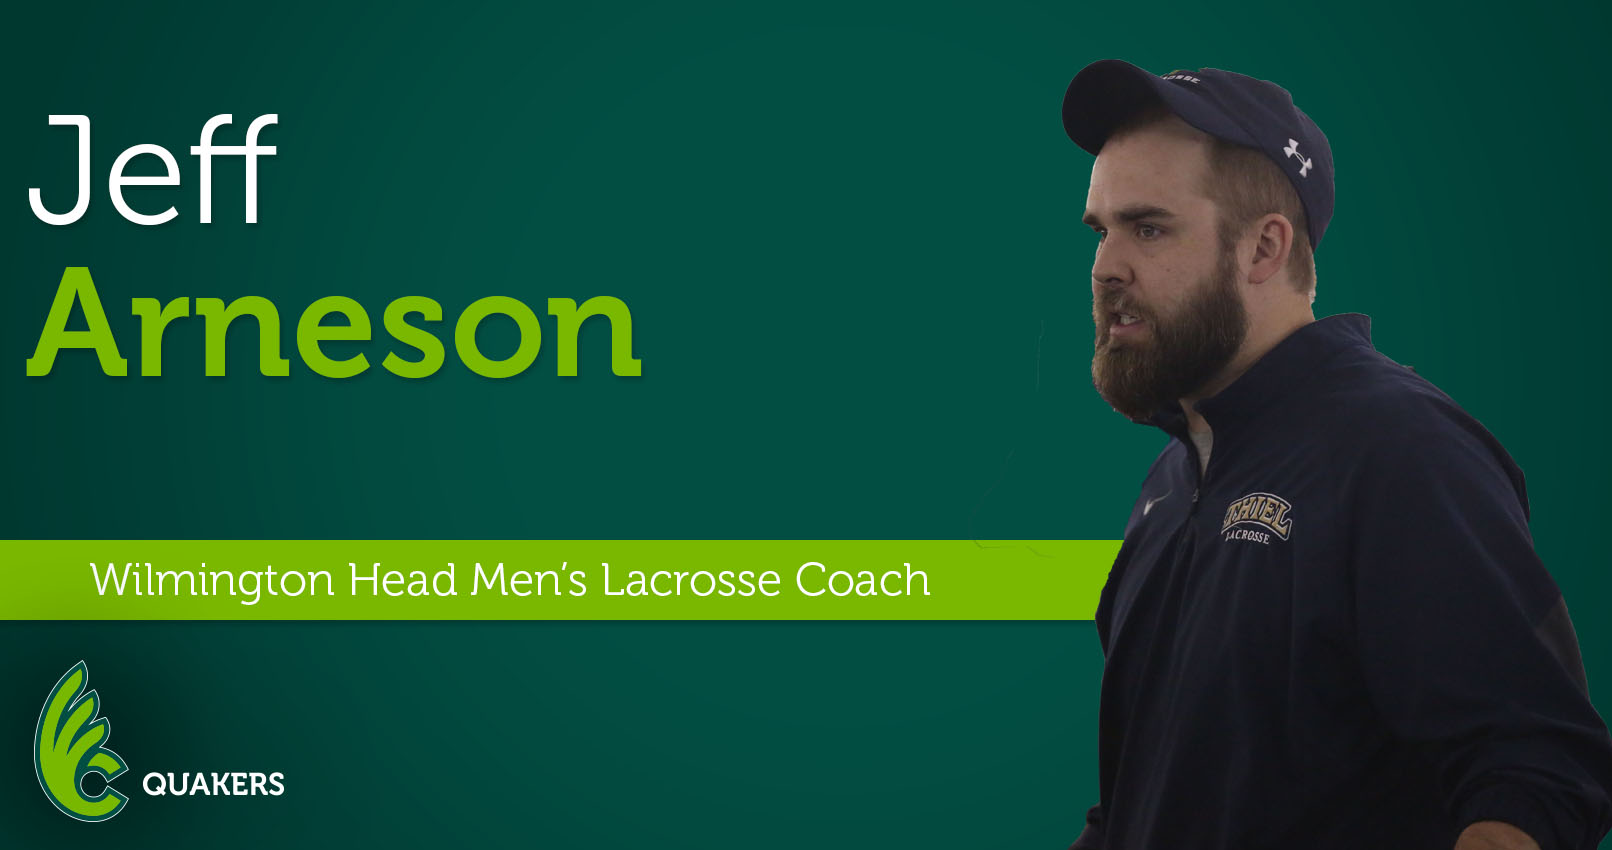 Jeff Arneson Named Head Men's Lacrosse Coach